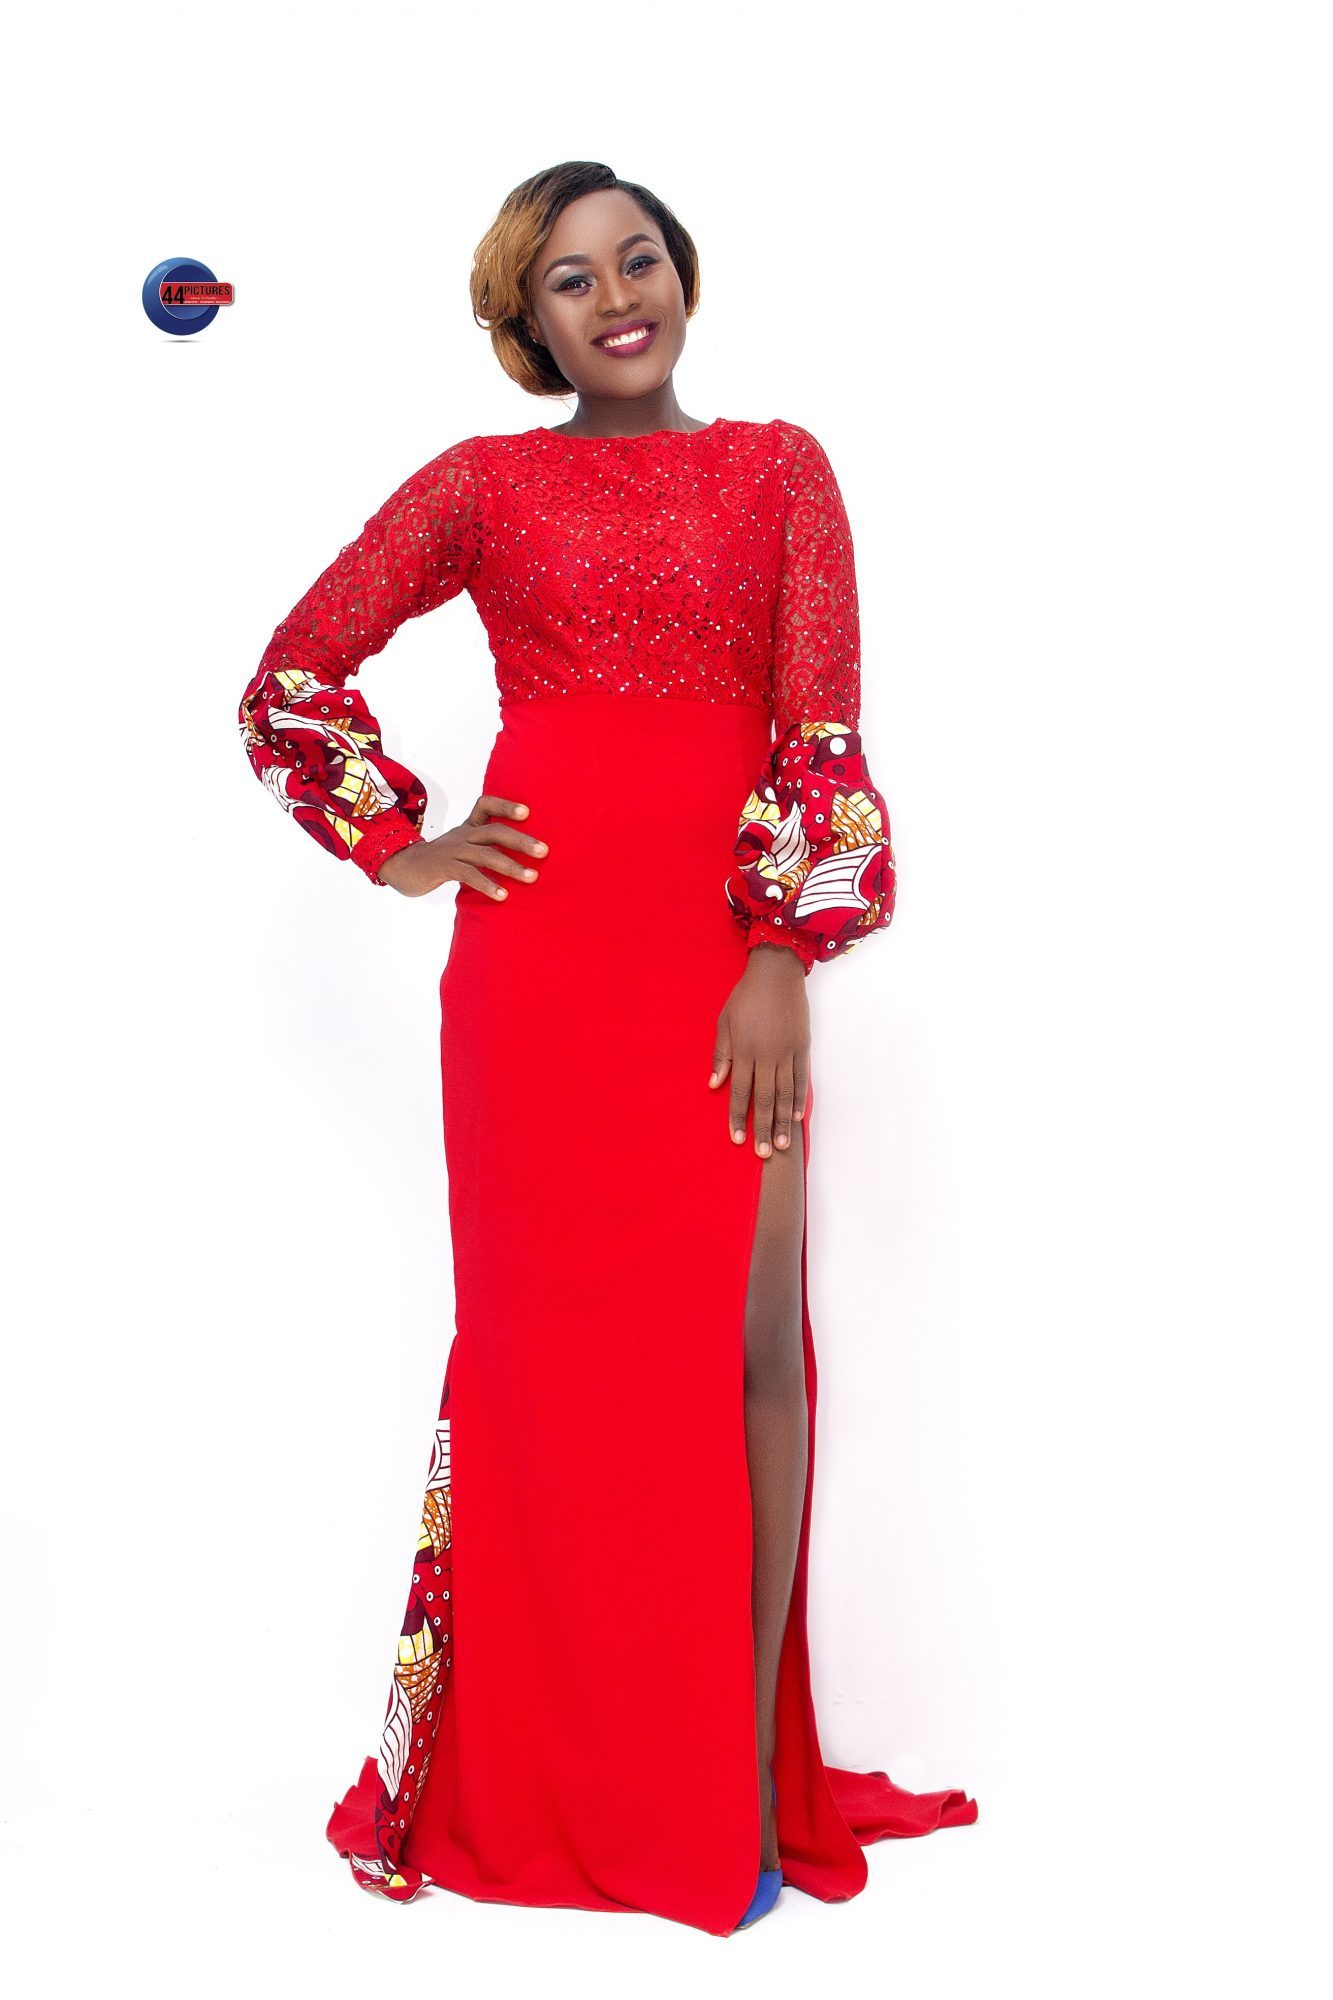 """Exclusive Pictures of BISI Designs look-book collection from the """"Supernatural Me"""" collection called """"10 in 1"""""""